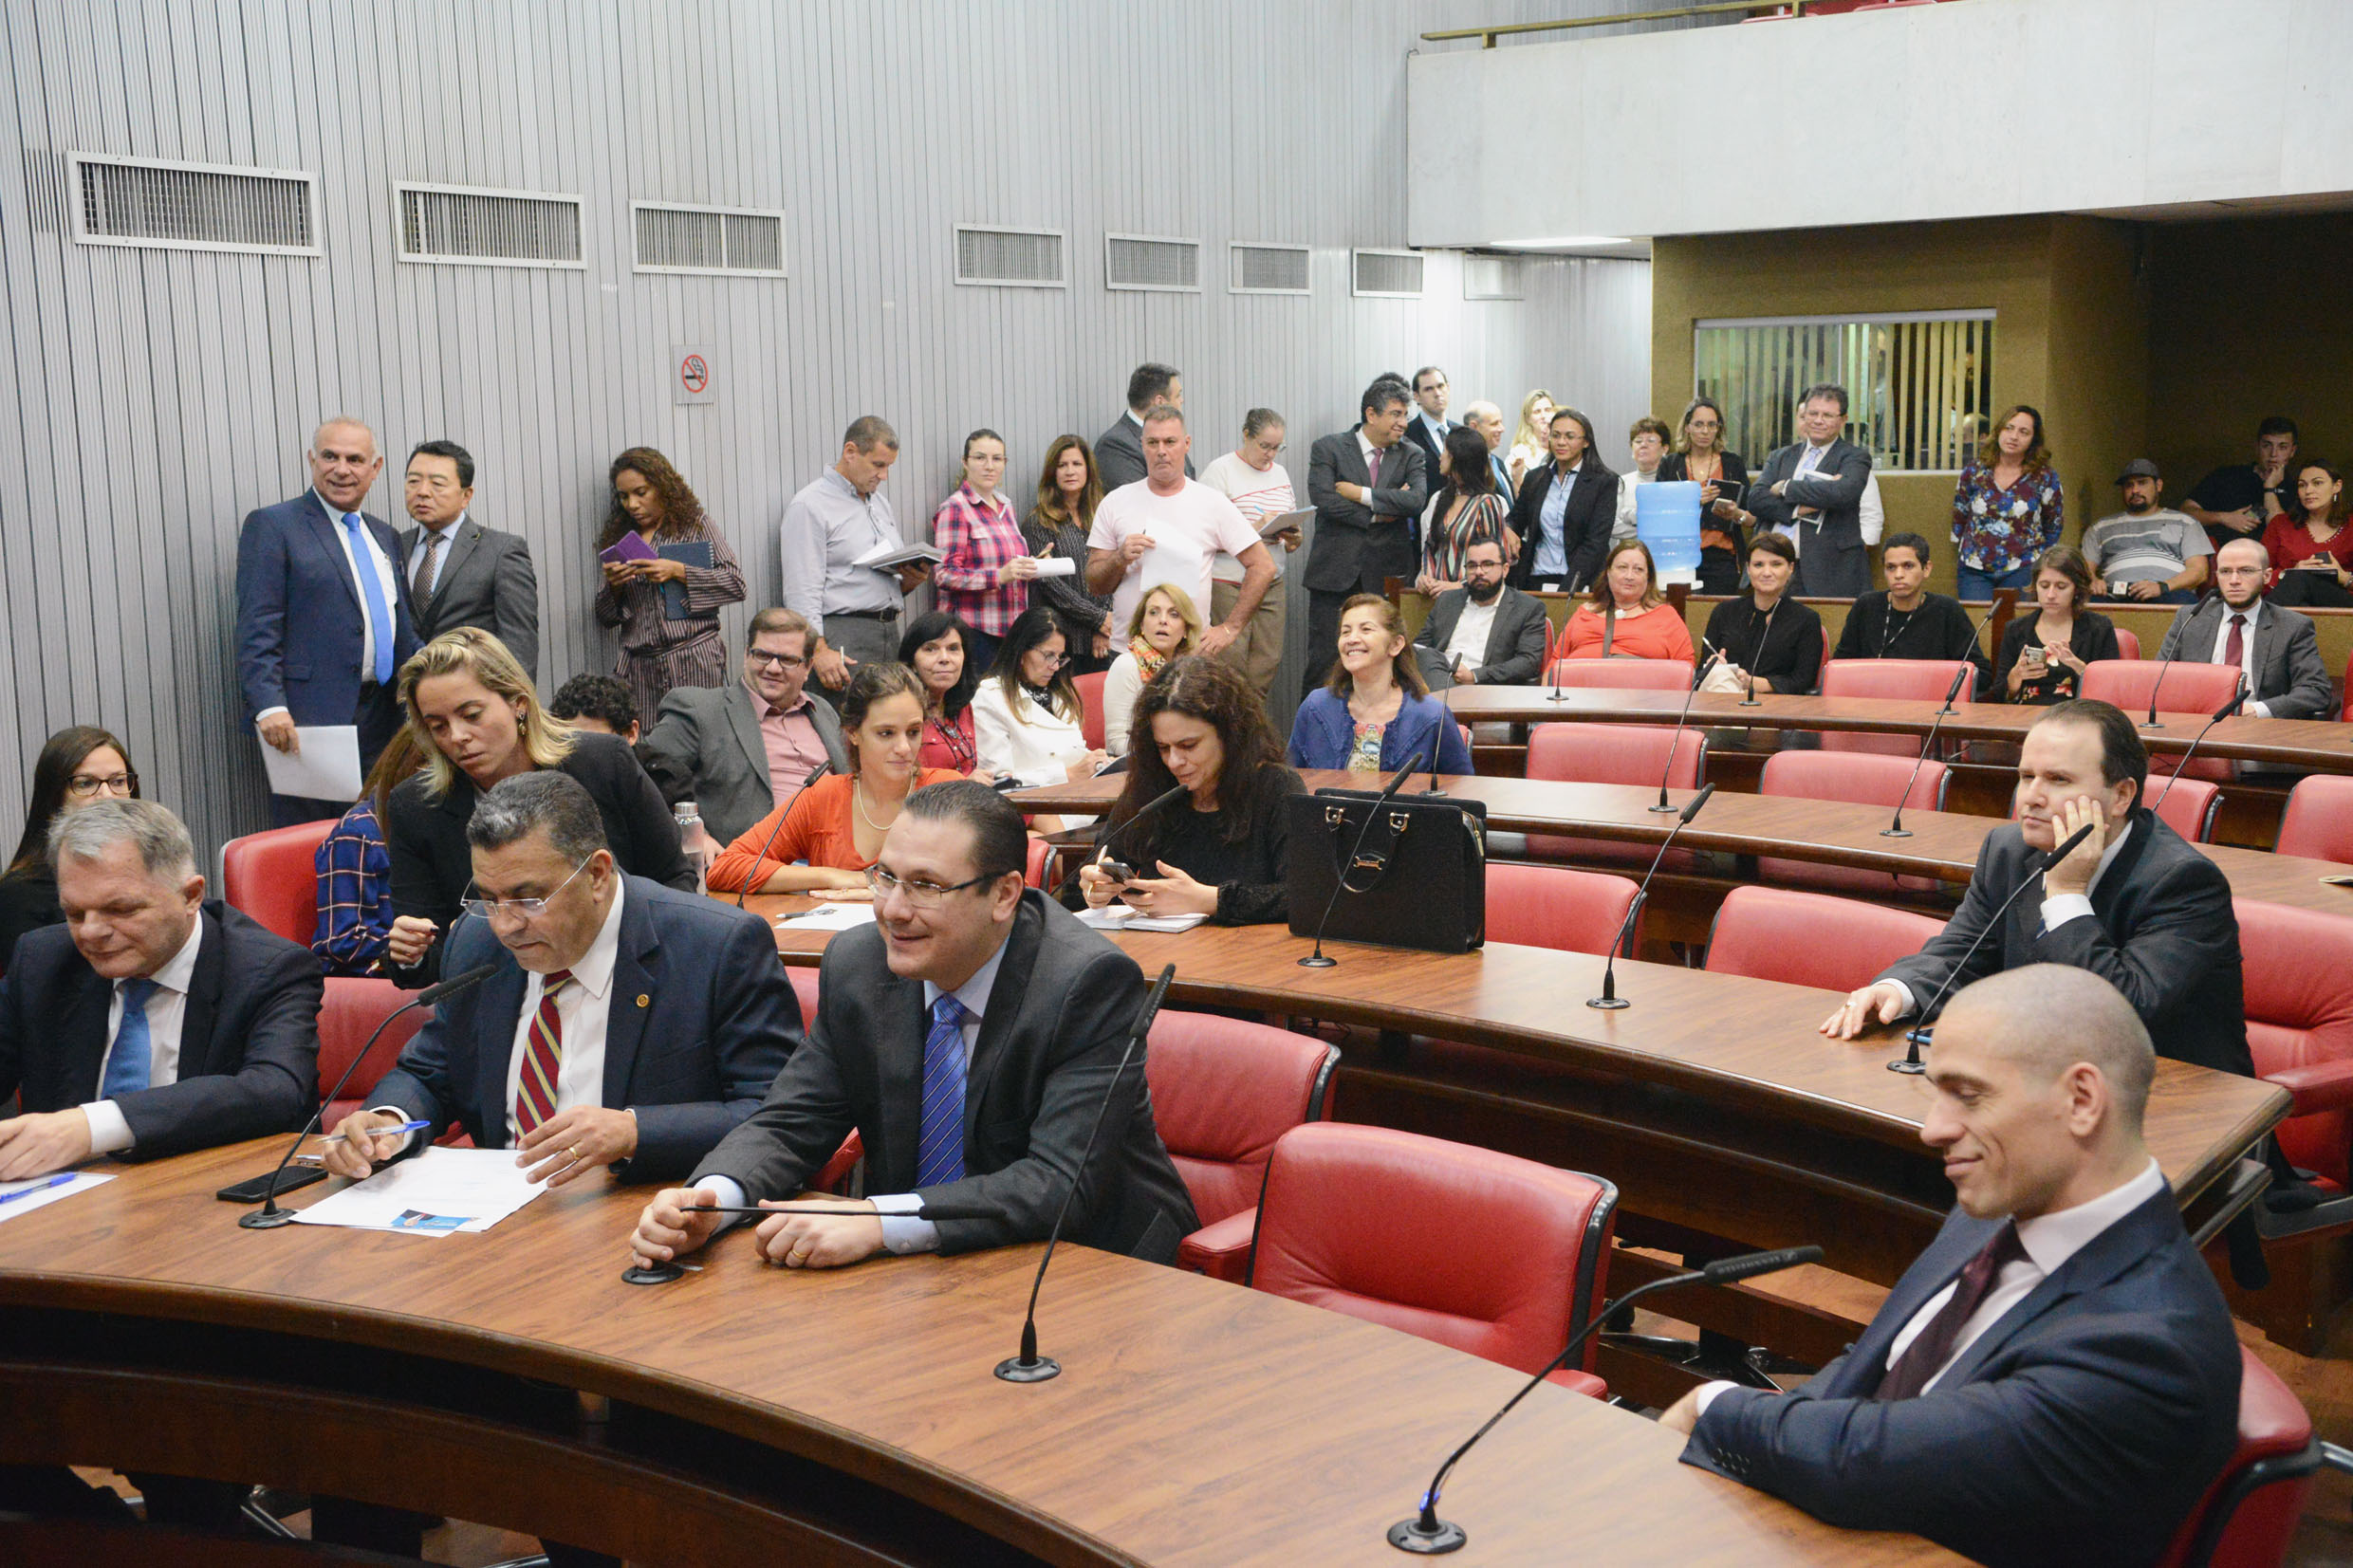 Parlamentares presentes<a style='float:right' href='https://www3.al.sp.gov.br/repositorio/noticia/N-04-2019/fg232595.jpg' target=_blank><img src='/_img/material-file-download-white.png' width='14px' alt='Clique para baixar a imagem'></a>